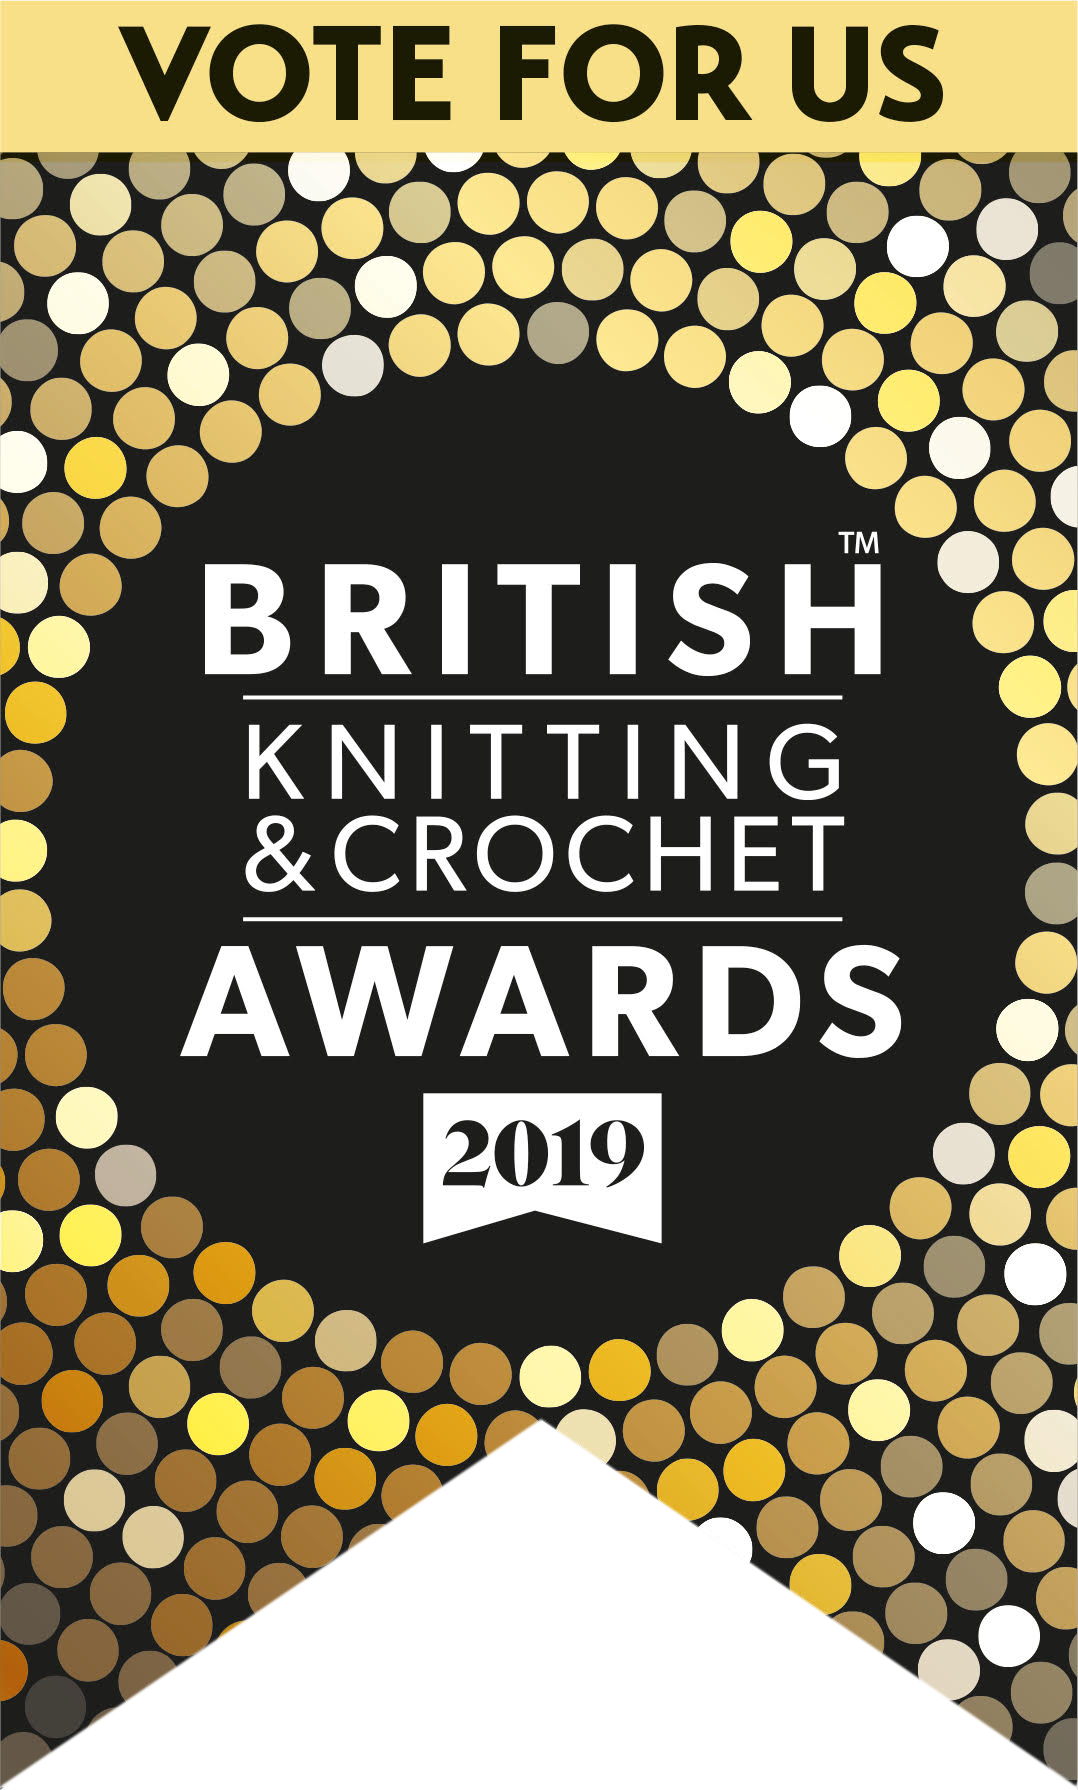 2017 British knitting and crochet awards